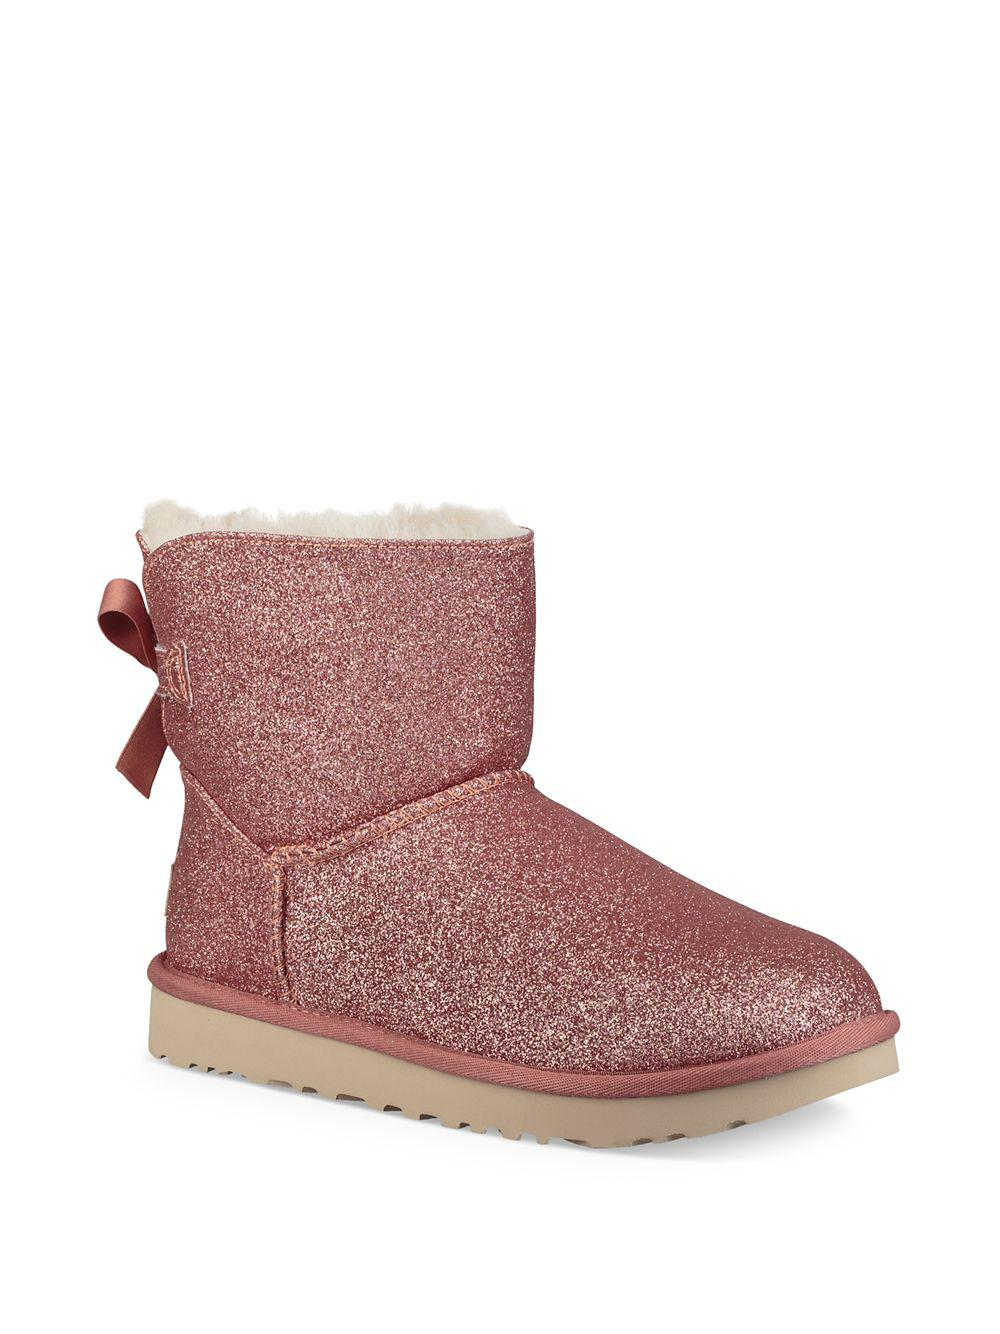 5ec40760d3a Ugg Mini Bailey Bow Sparkle Shearling Boots in Pink - Lyst